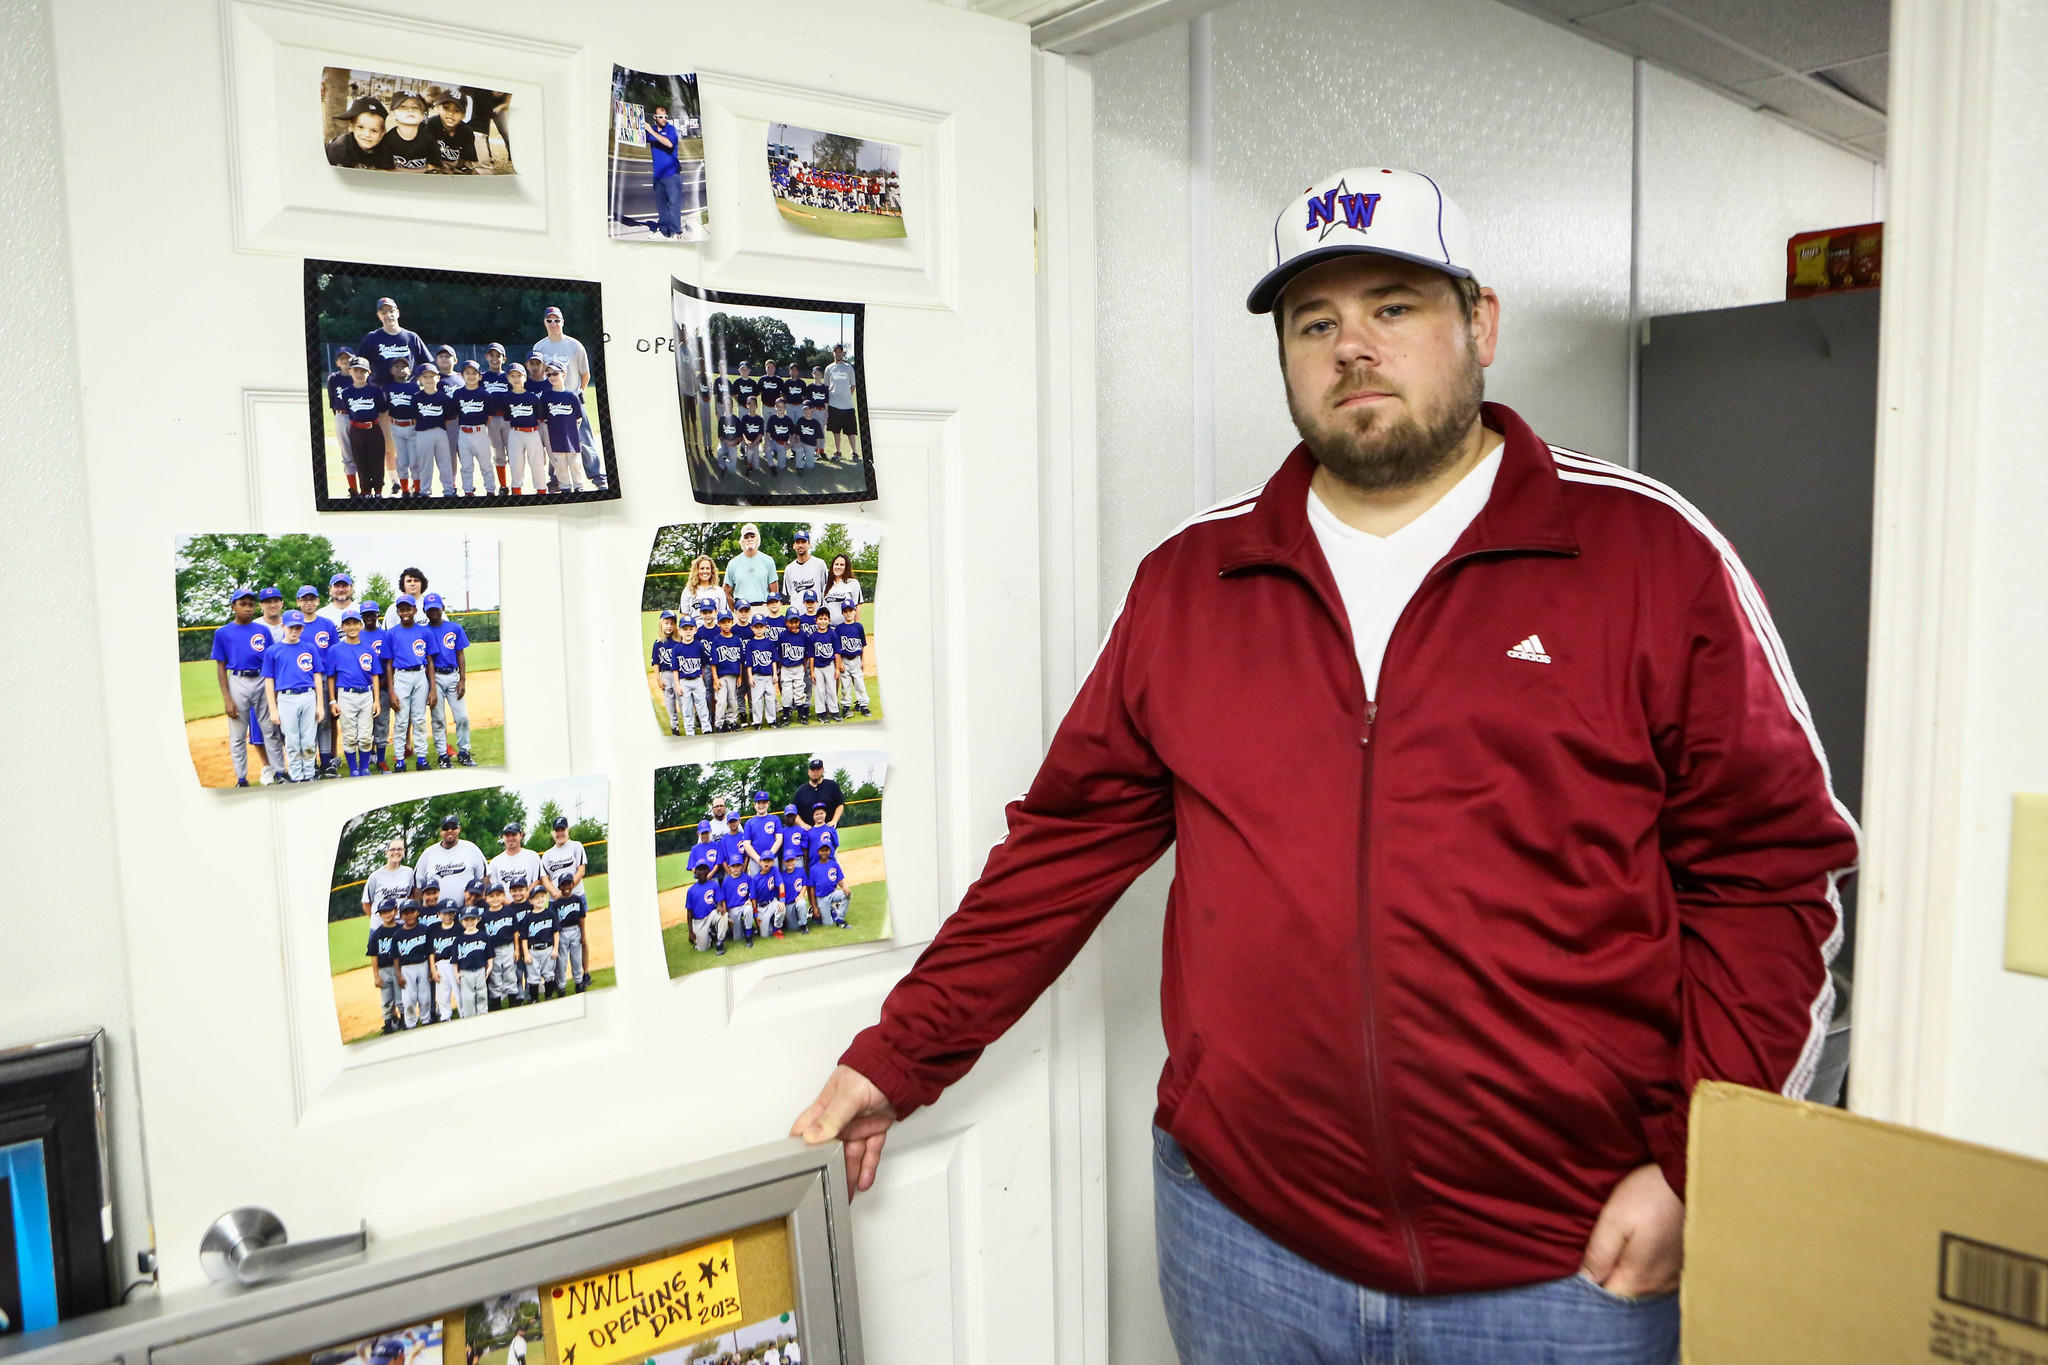 Robert Banyas, president of the Northwest Little League stands in the office of the concession stand near a damaged file cabinet after thieves stole equipment and concessions from the Rolling Hills Baseball Park on Pine Hills Road totaling more than $3,000 in Orlando on Thursday, February 27, 2014.